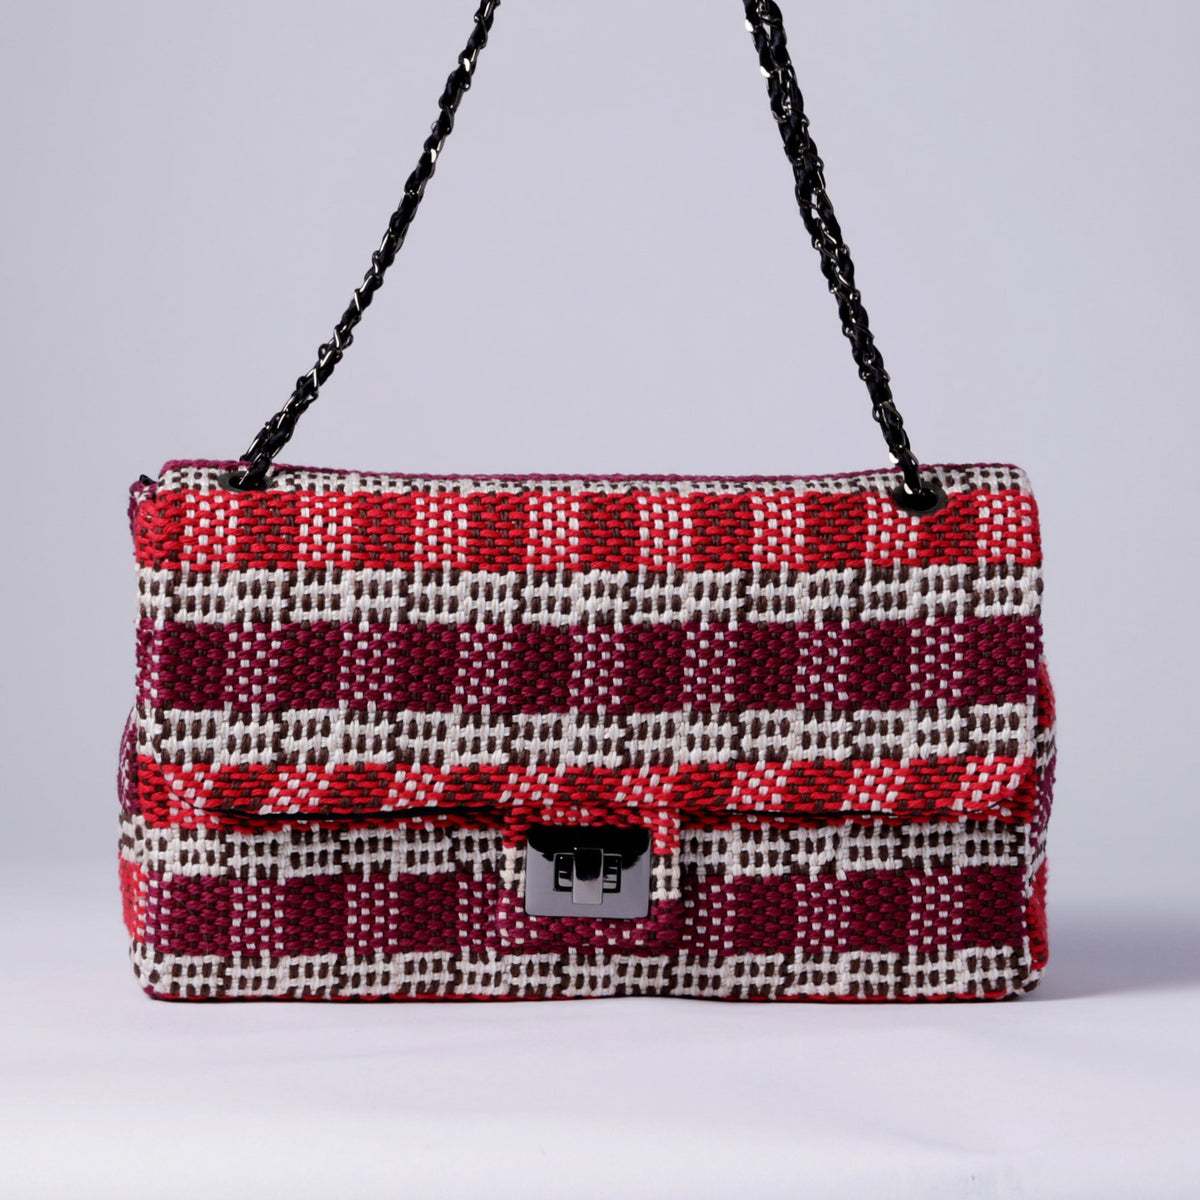 BAG MARIA LA ROSA, HANDBAG, STRIPES